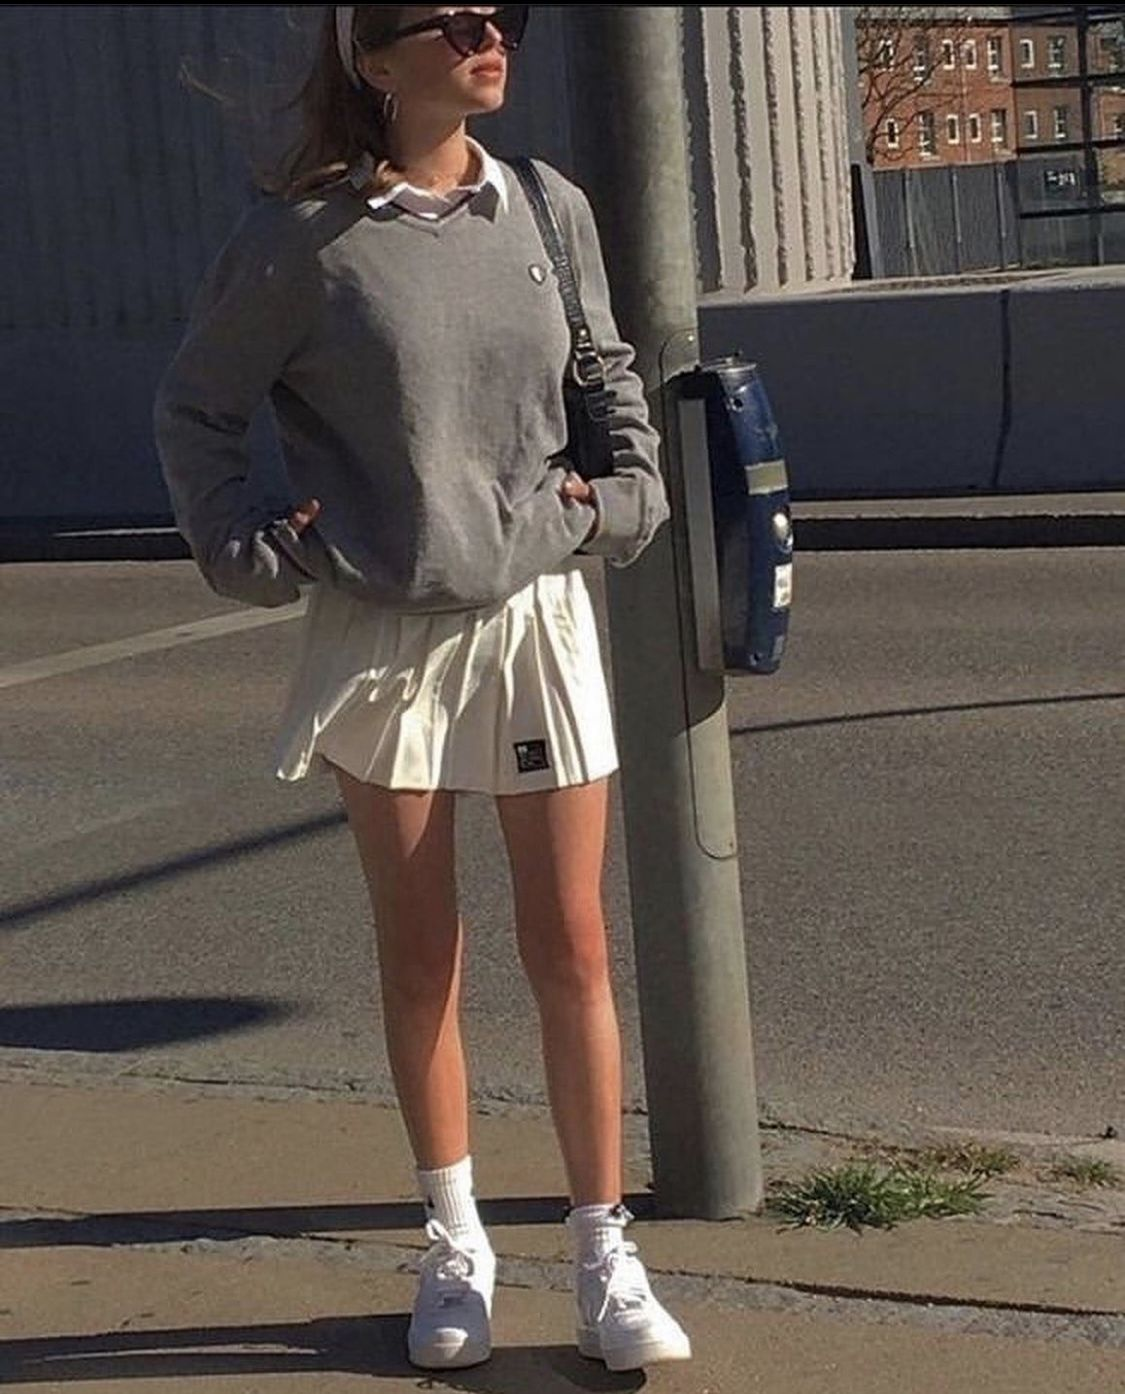 Pin By Amit Shuster On Looks In 2020 Tennis Skirt Outfit Streetwear Fashion Fashion Inspo Outfits